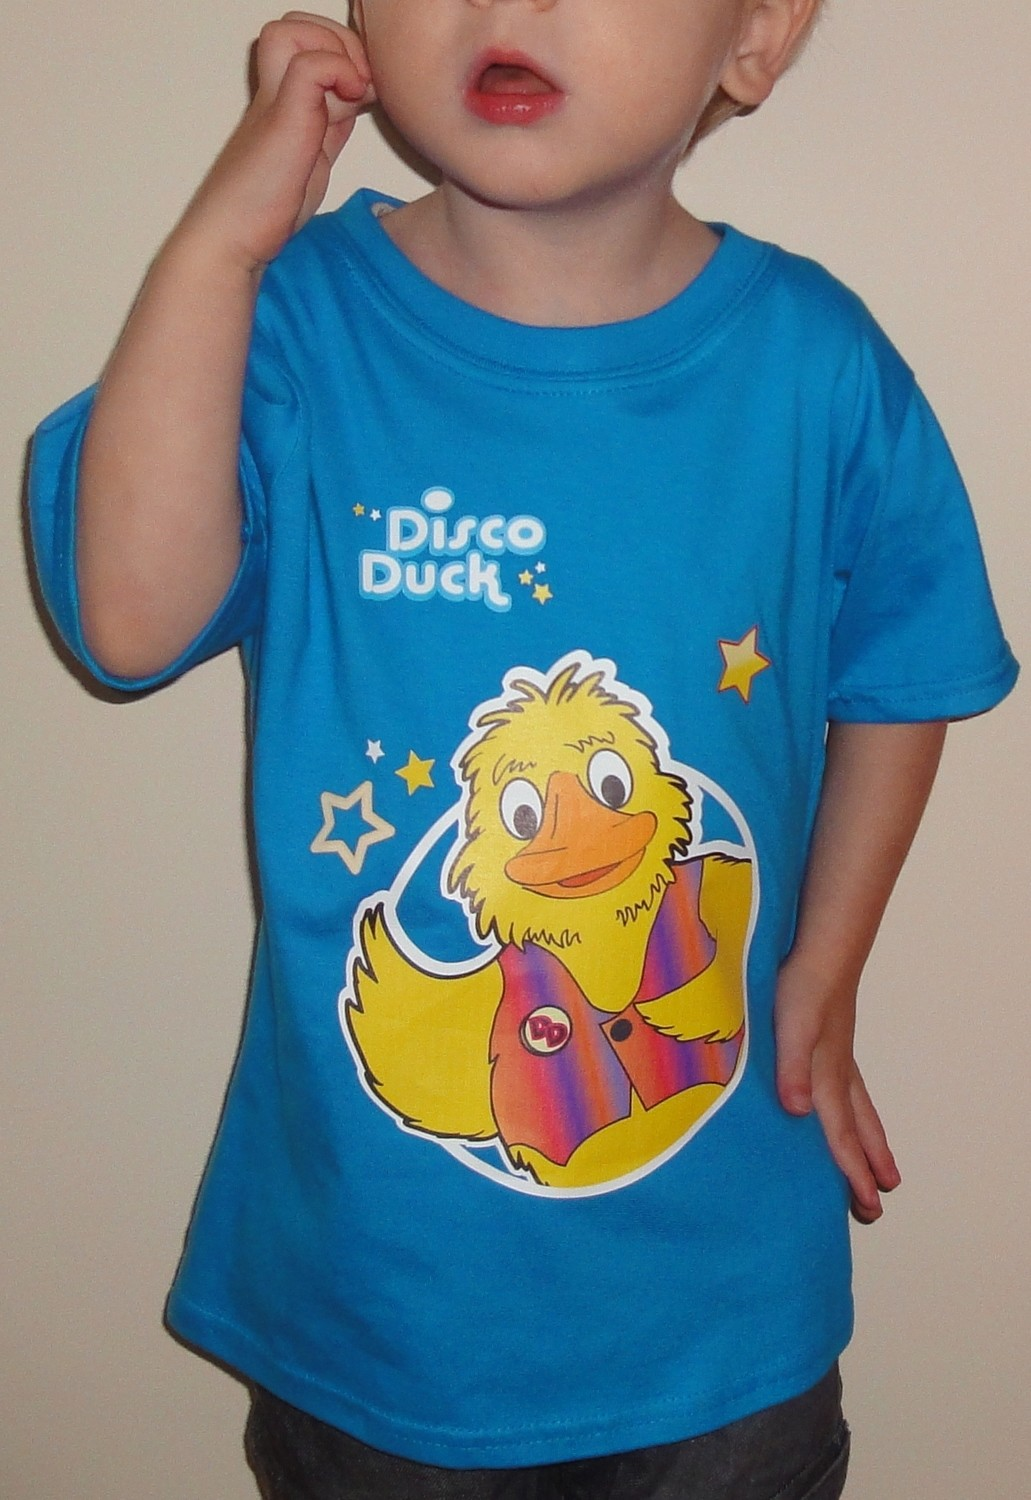 CHILDRENS T SHIRT FOR ORDER QUANTITIES OF 10 OR MORE! please specify sizes/colour.